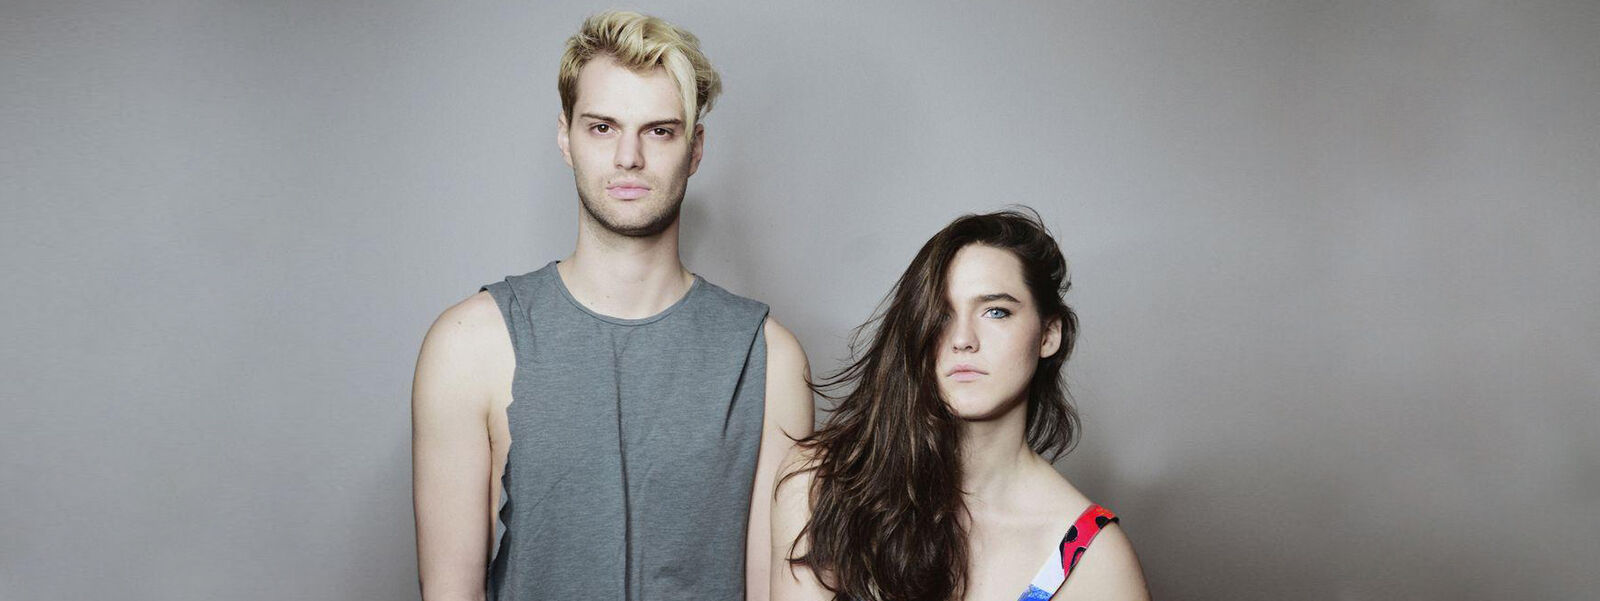 Sofi Tukker Tickets (21+ Event)